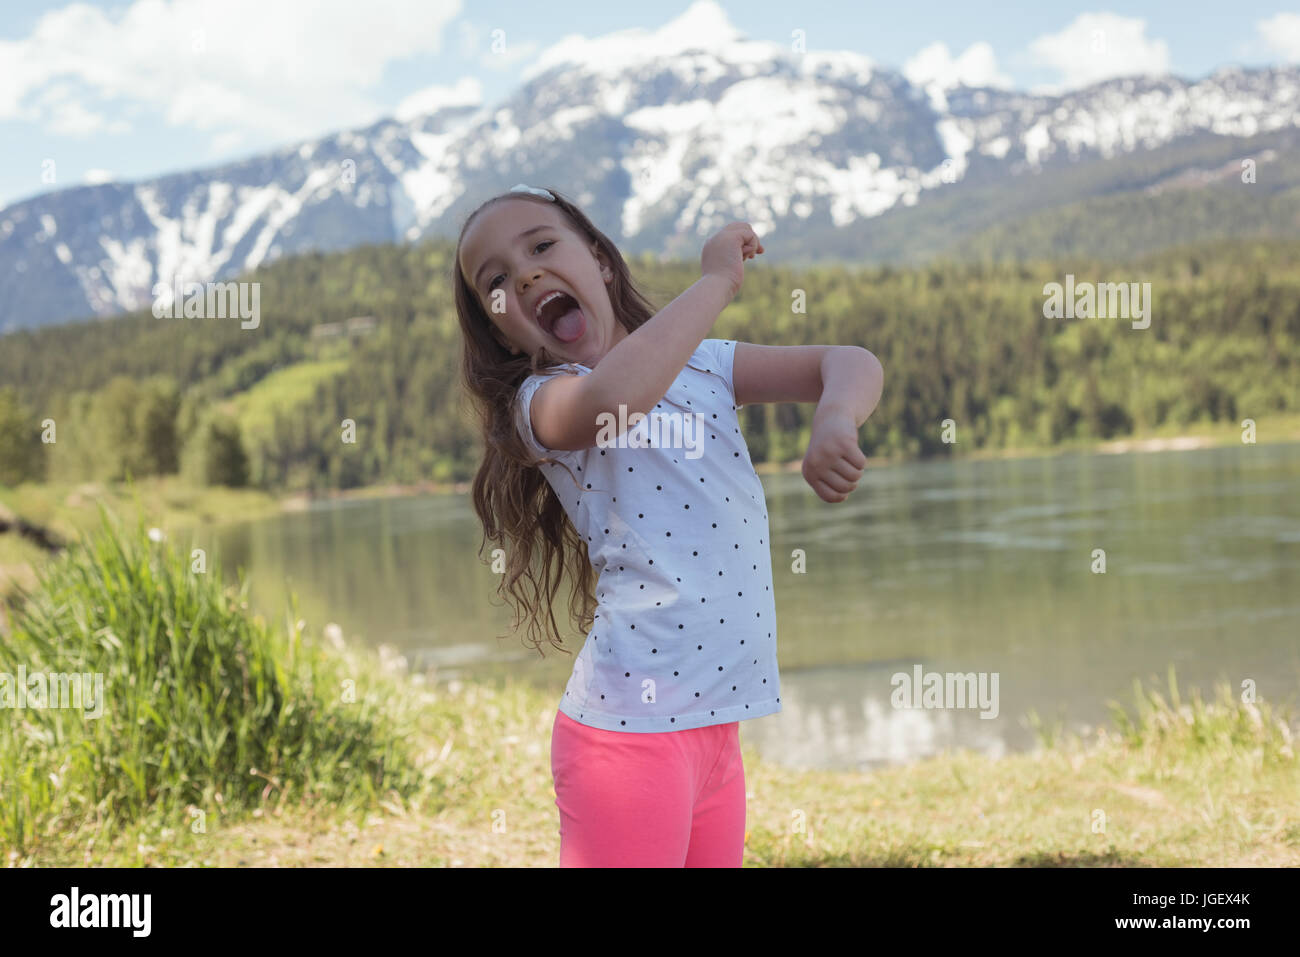 Portrait of cute girl having fun near river on a sunny day - Stock Image